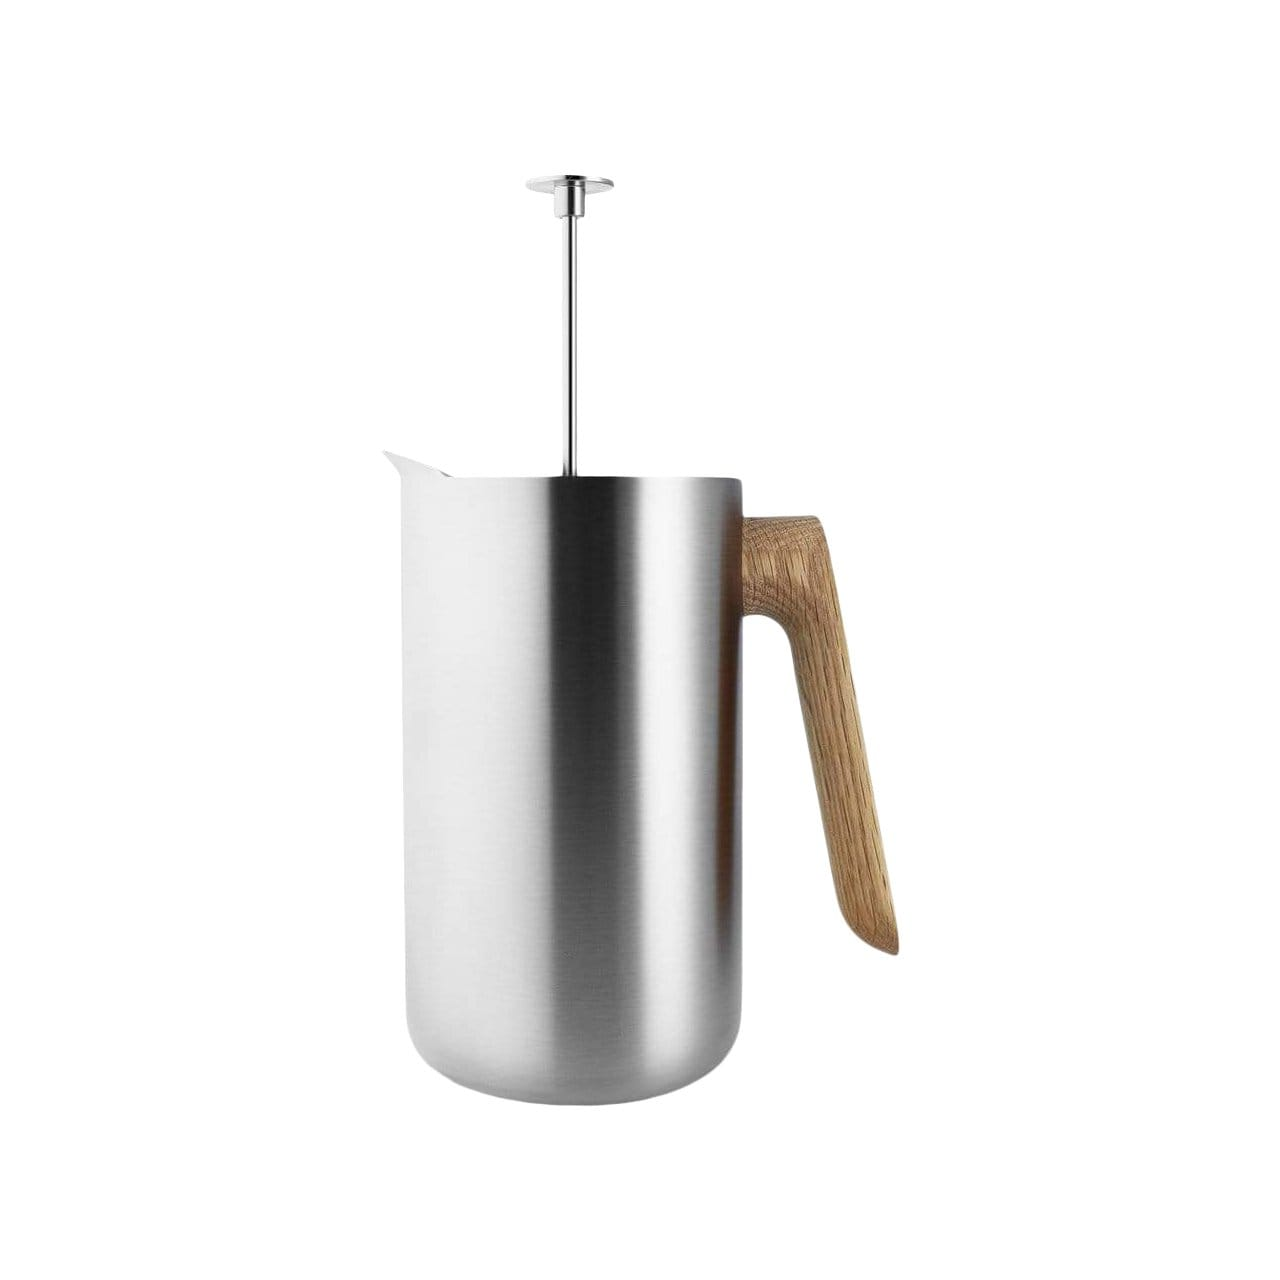 Nordic Kitchen Stainless Steel Cafetière